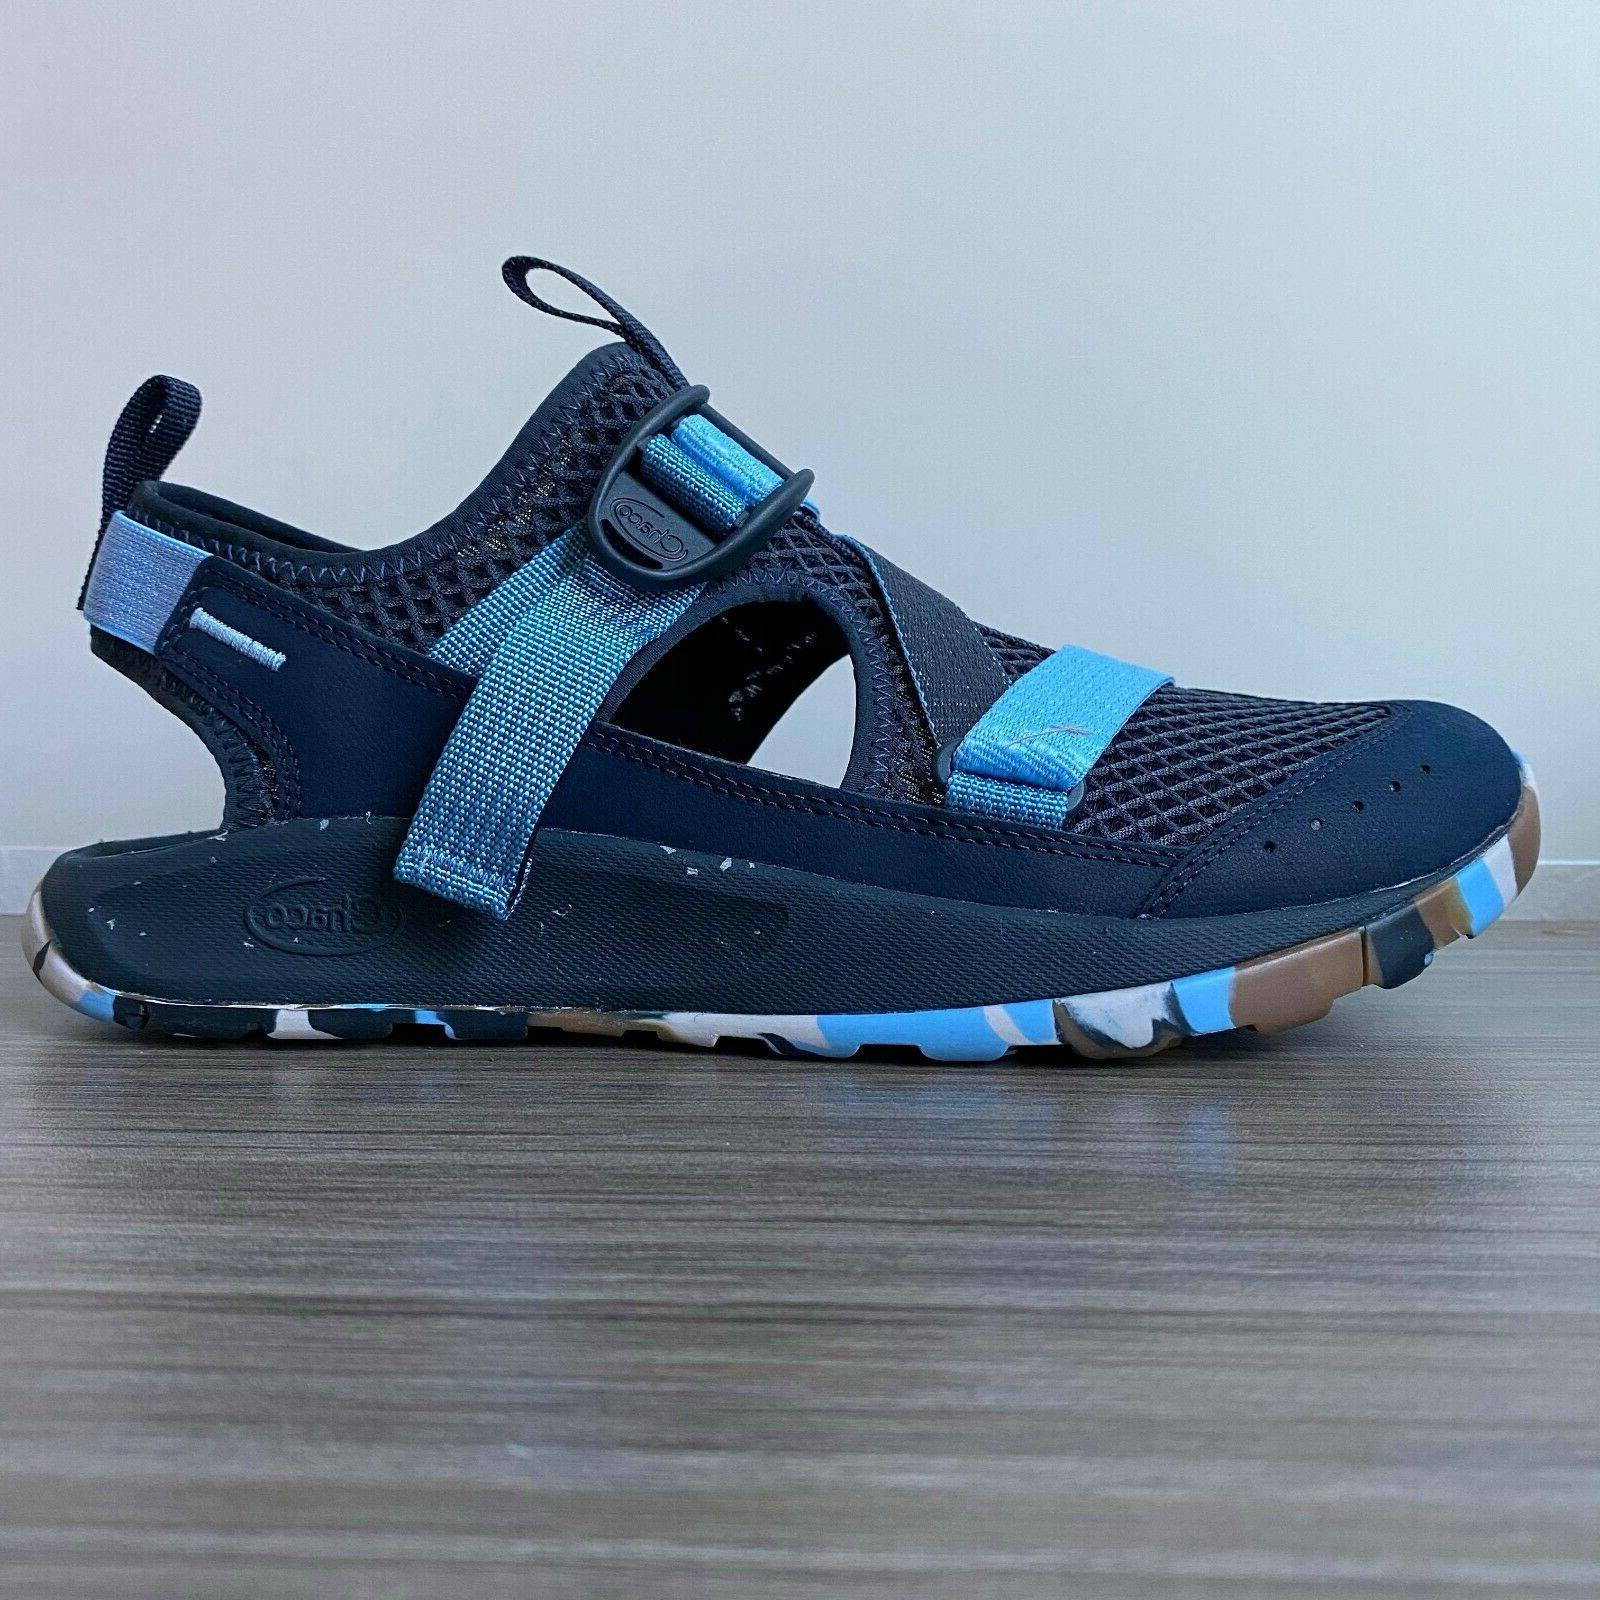 women s odyssey sandals water shoes size